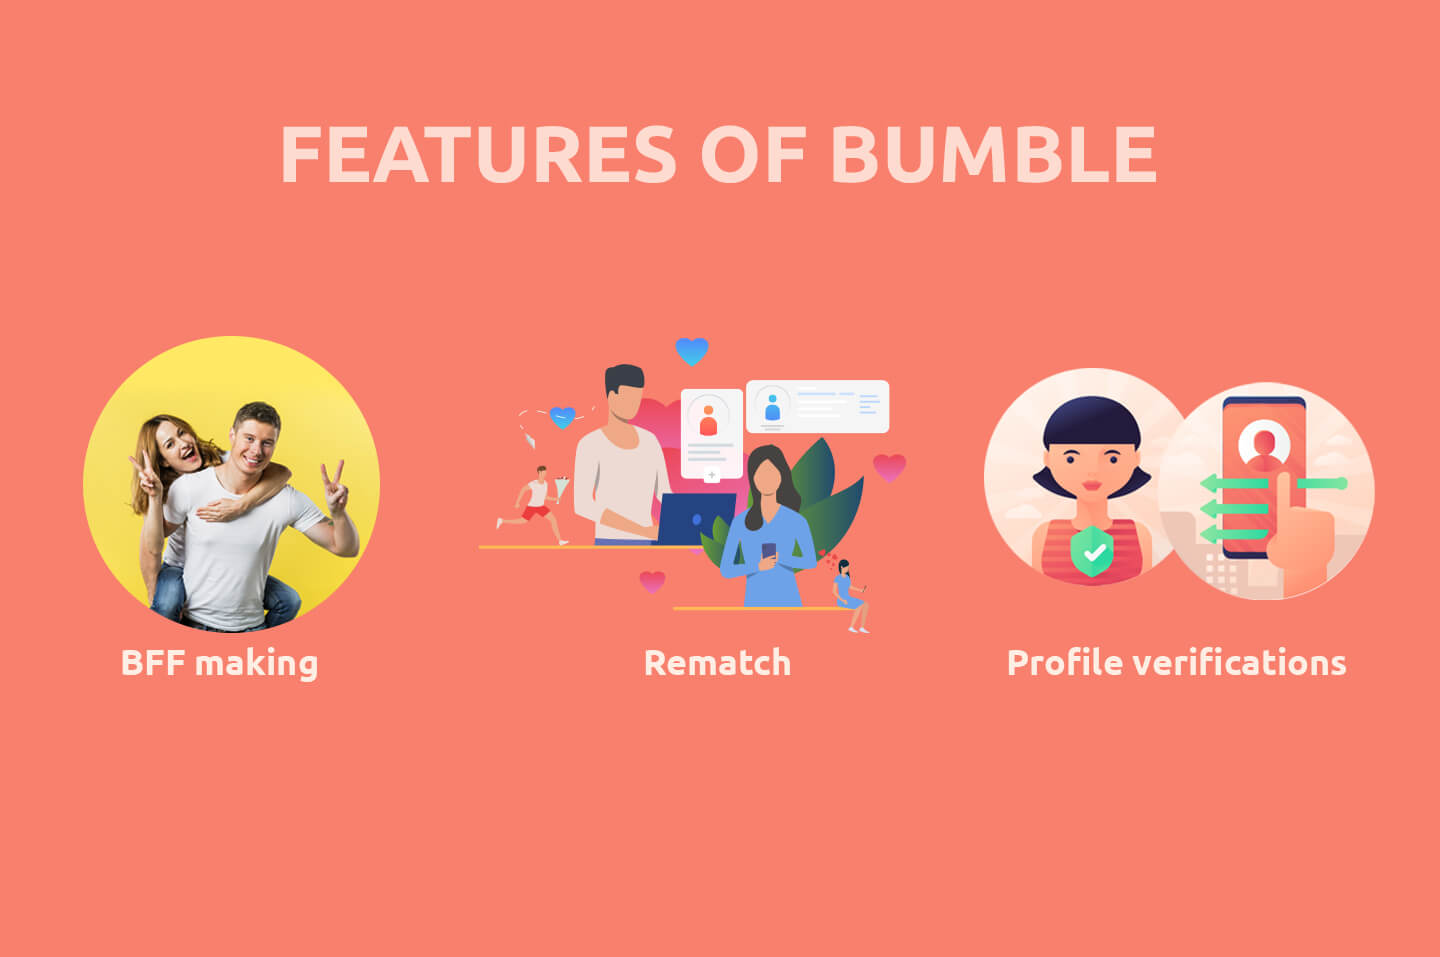 Features of bumble